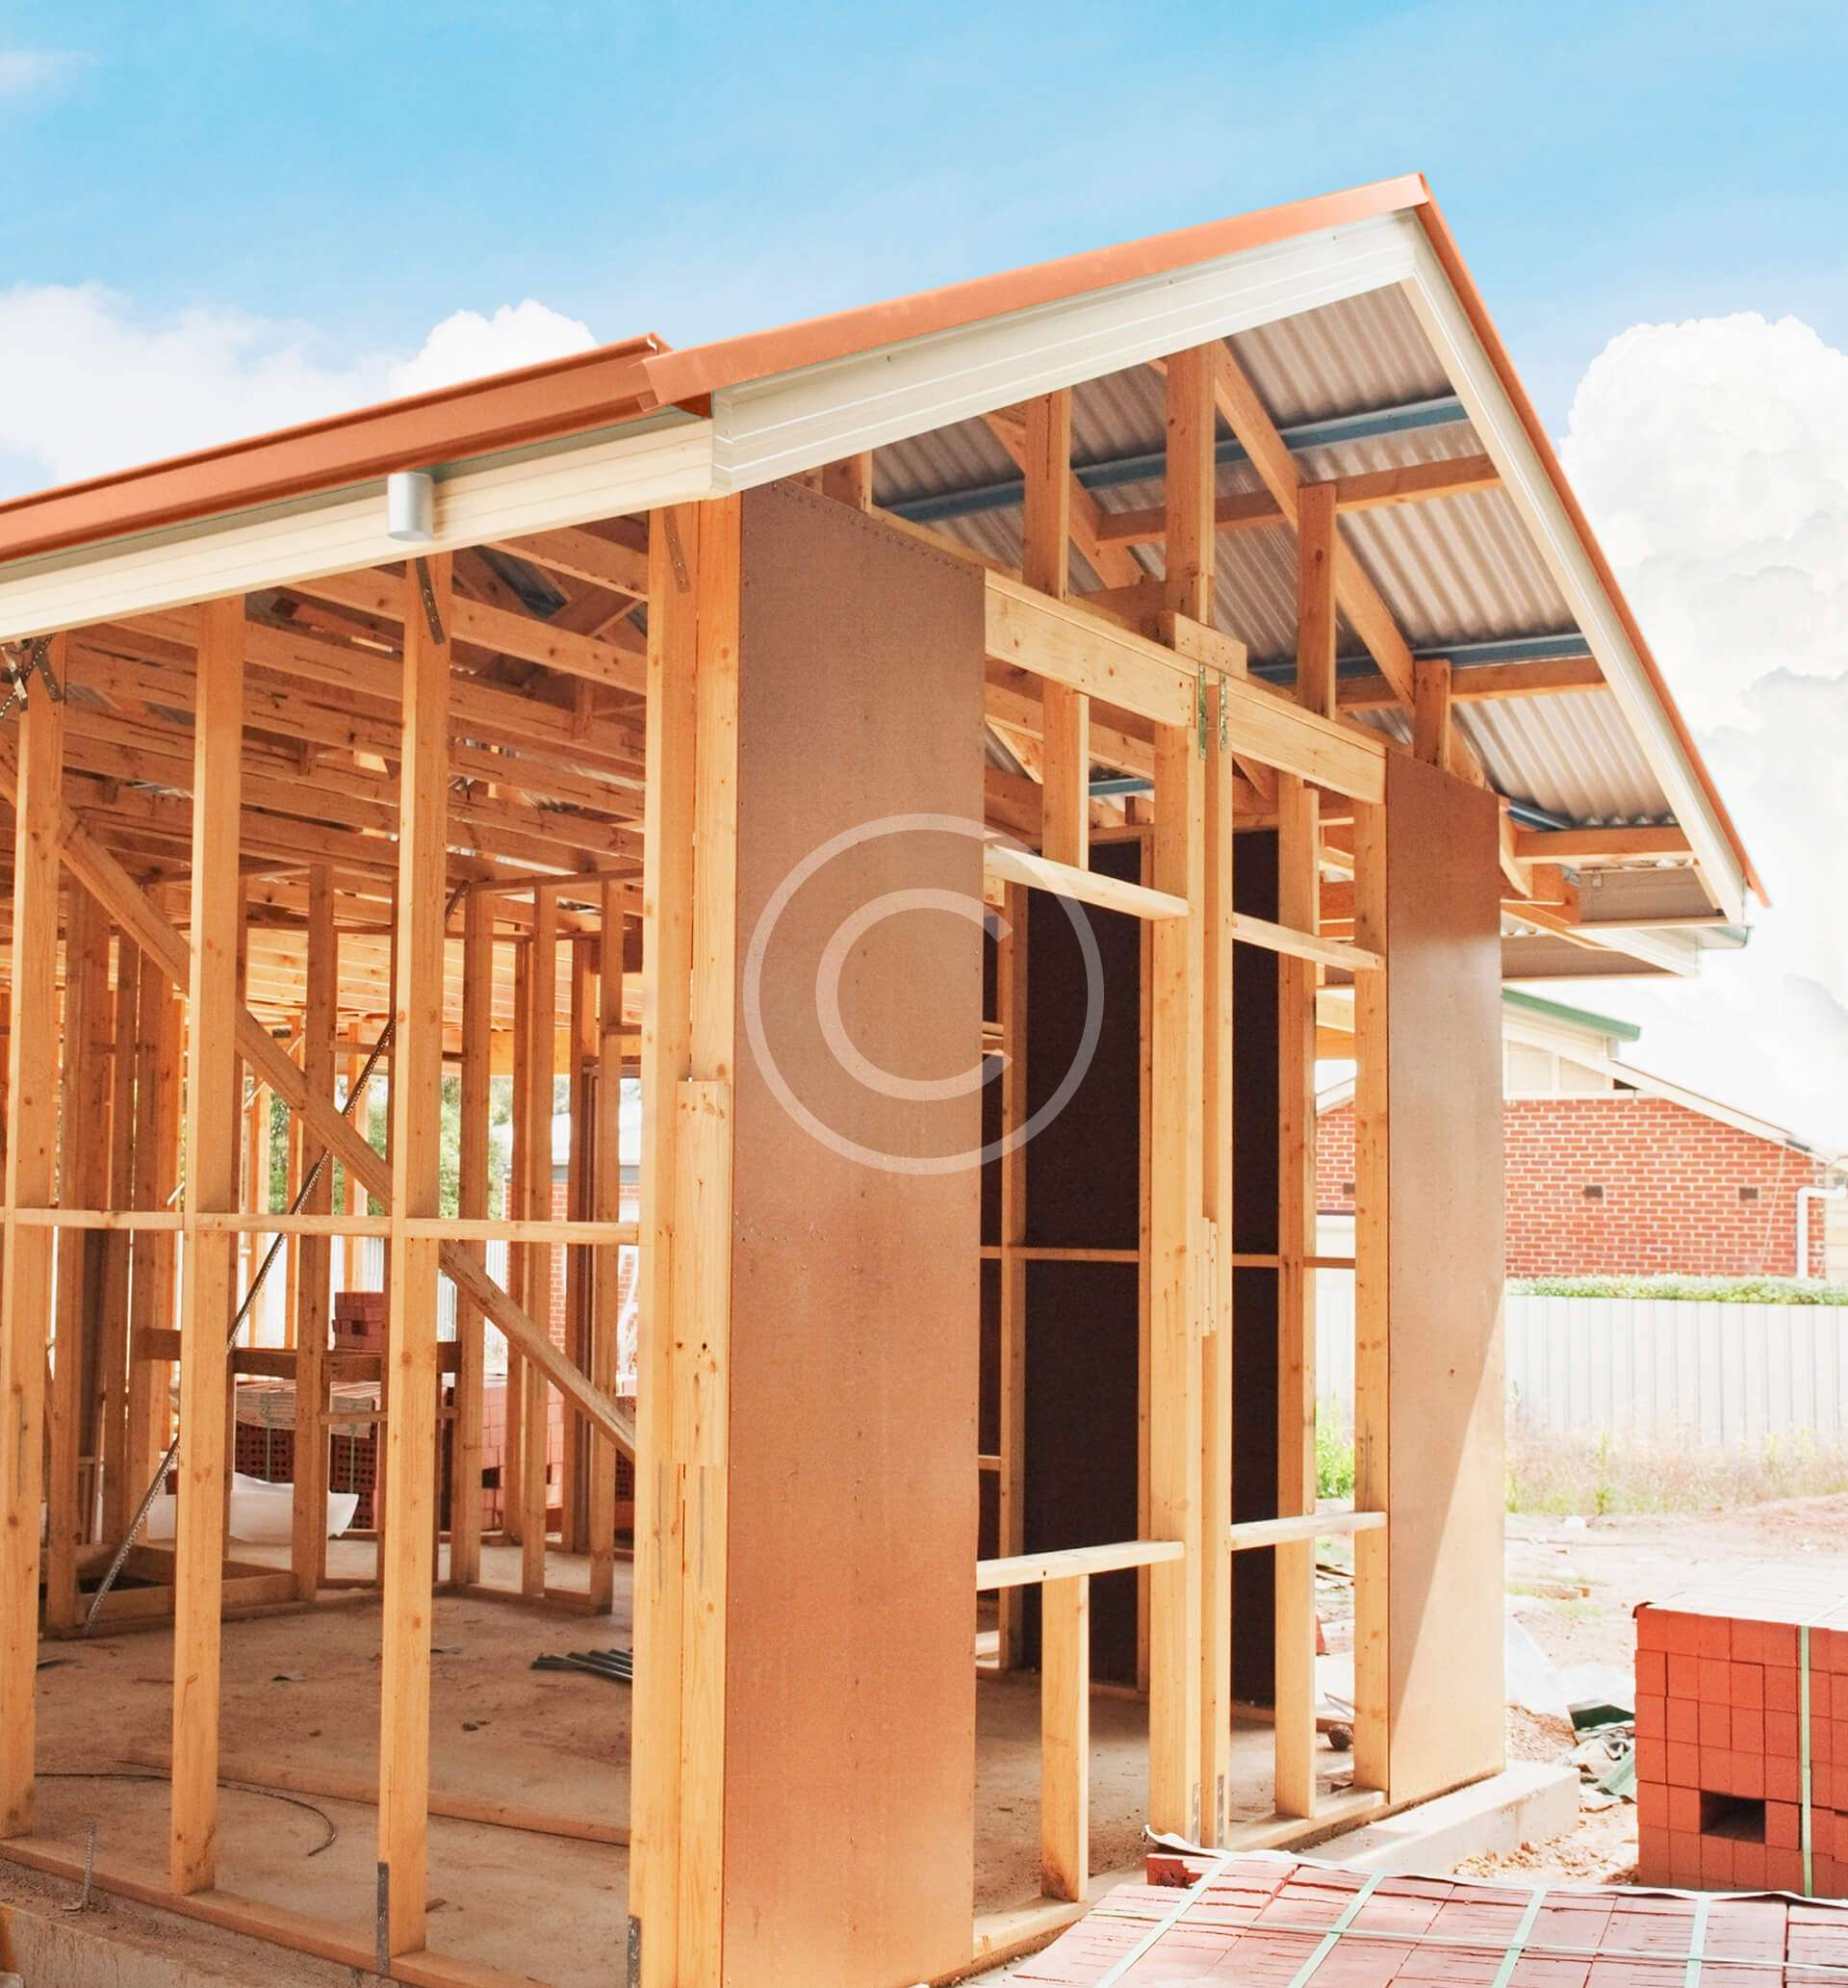 Construction of Home in Progress